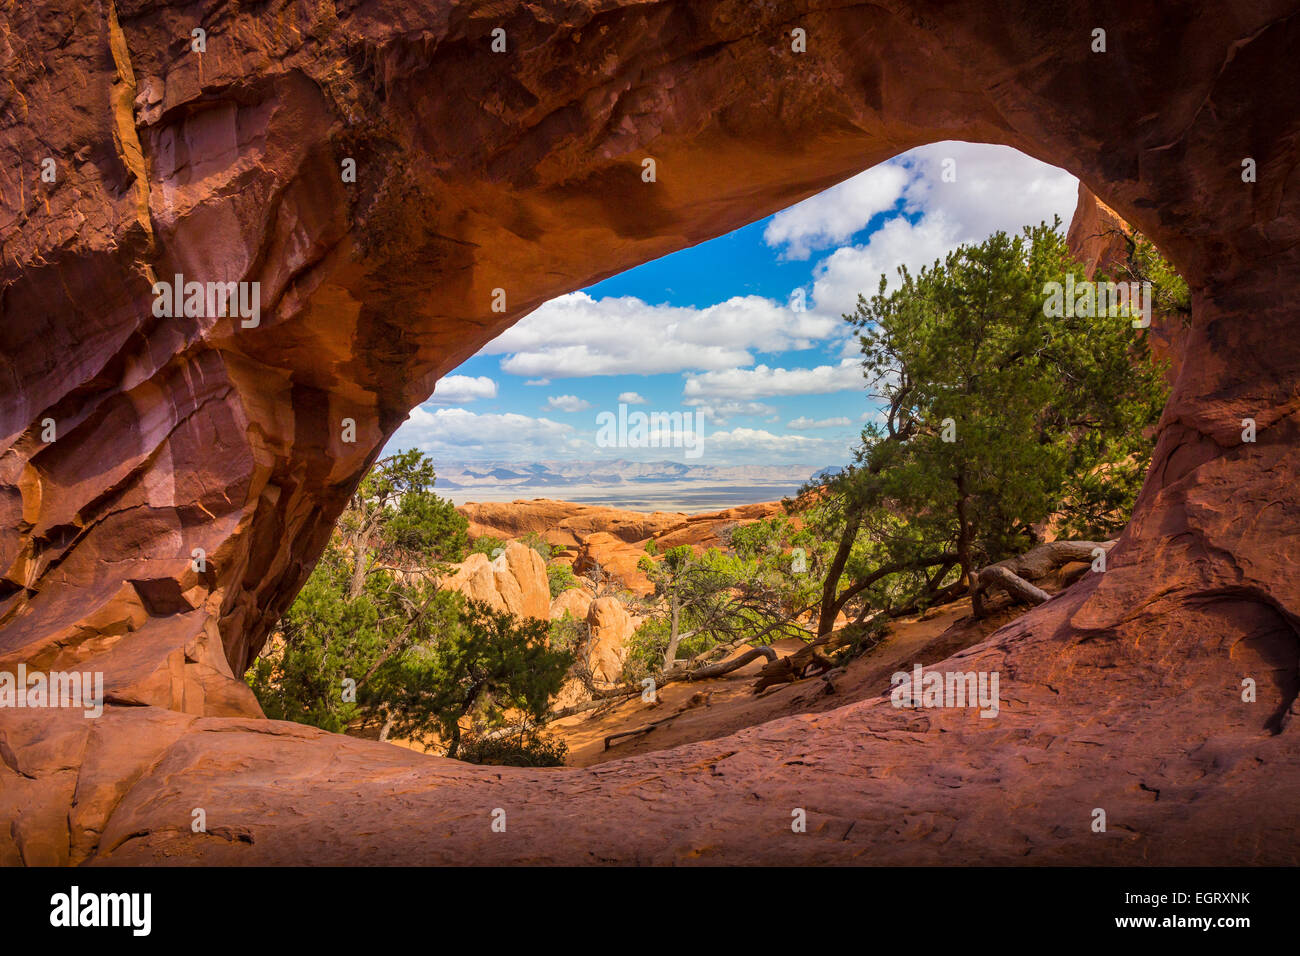 Double O Arch in Arches National Park, a US National Park in eastern Utah. Stock Photo